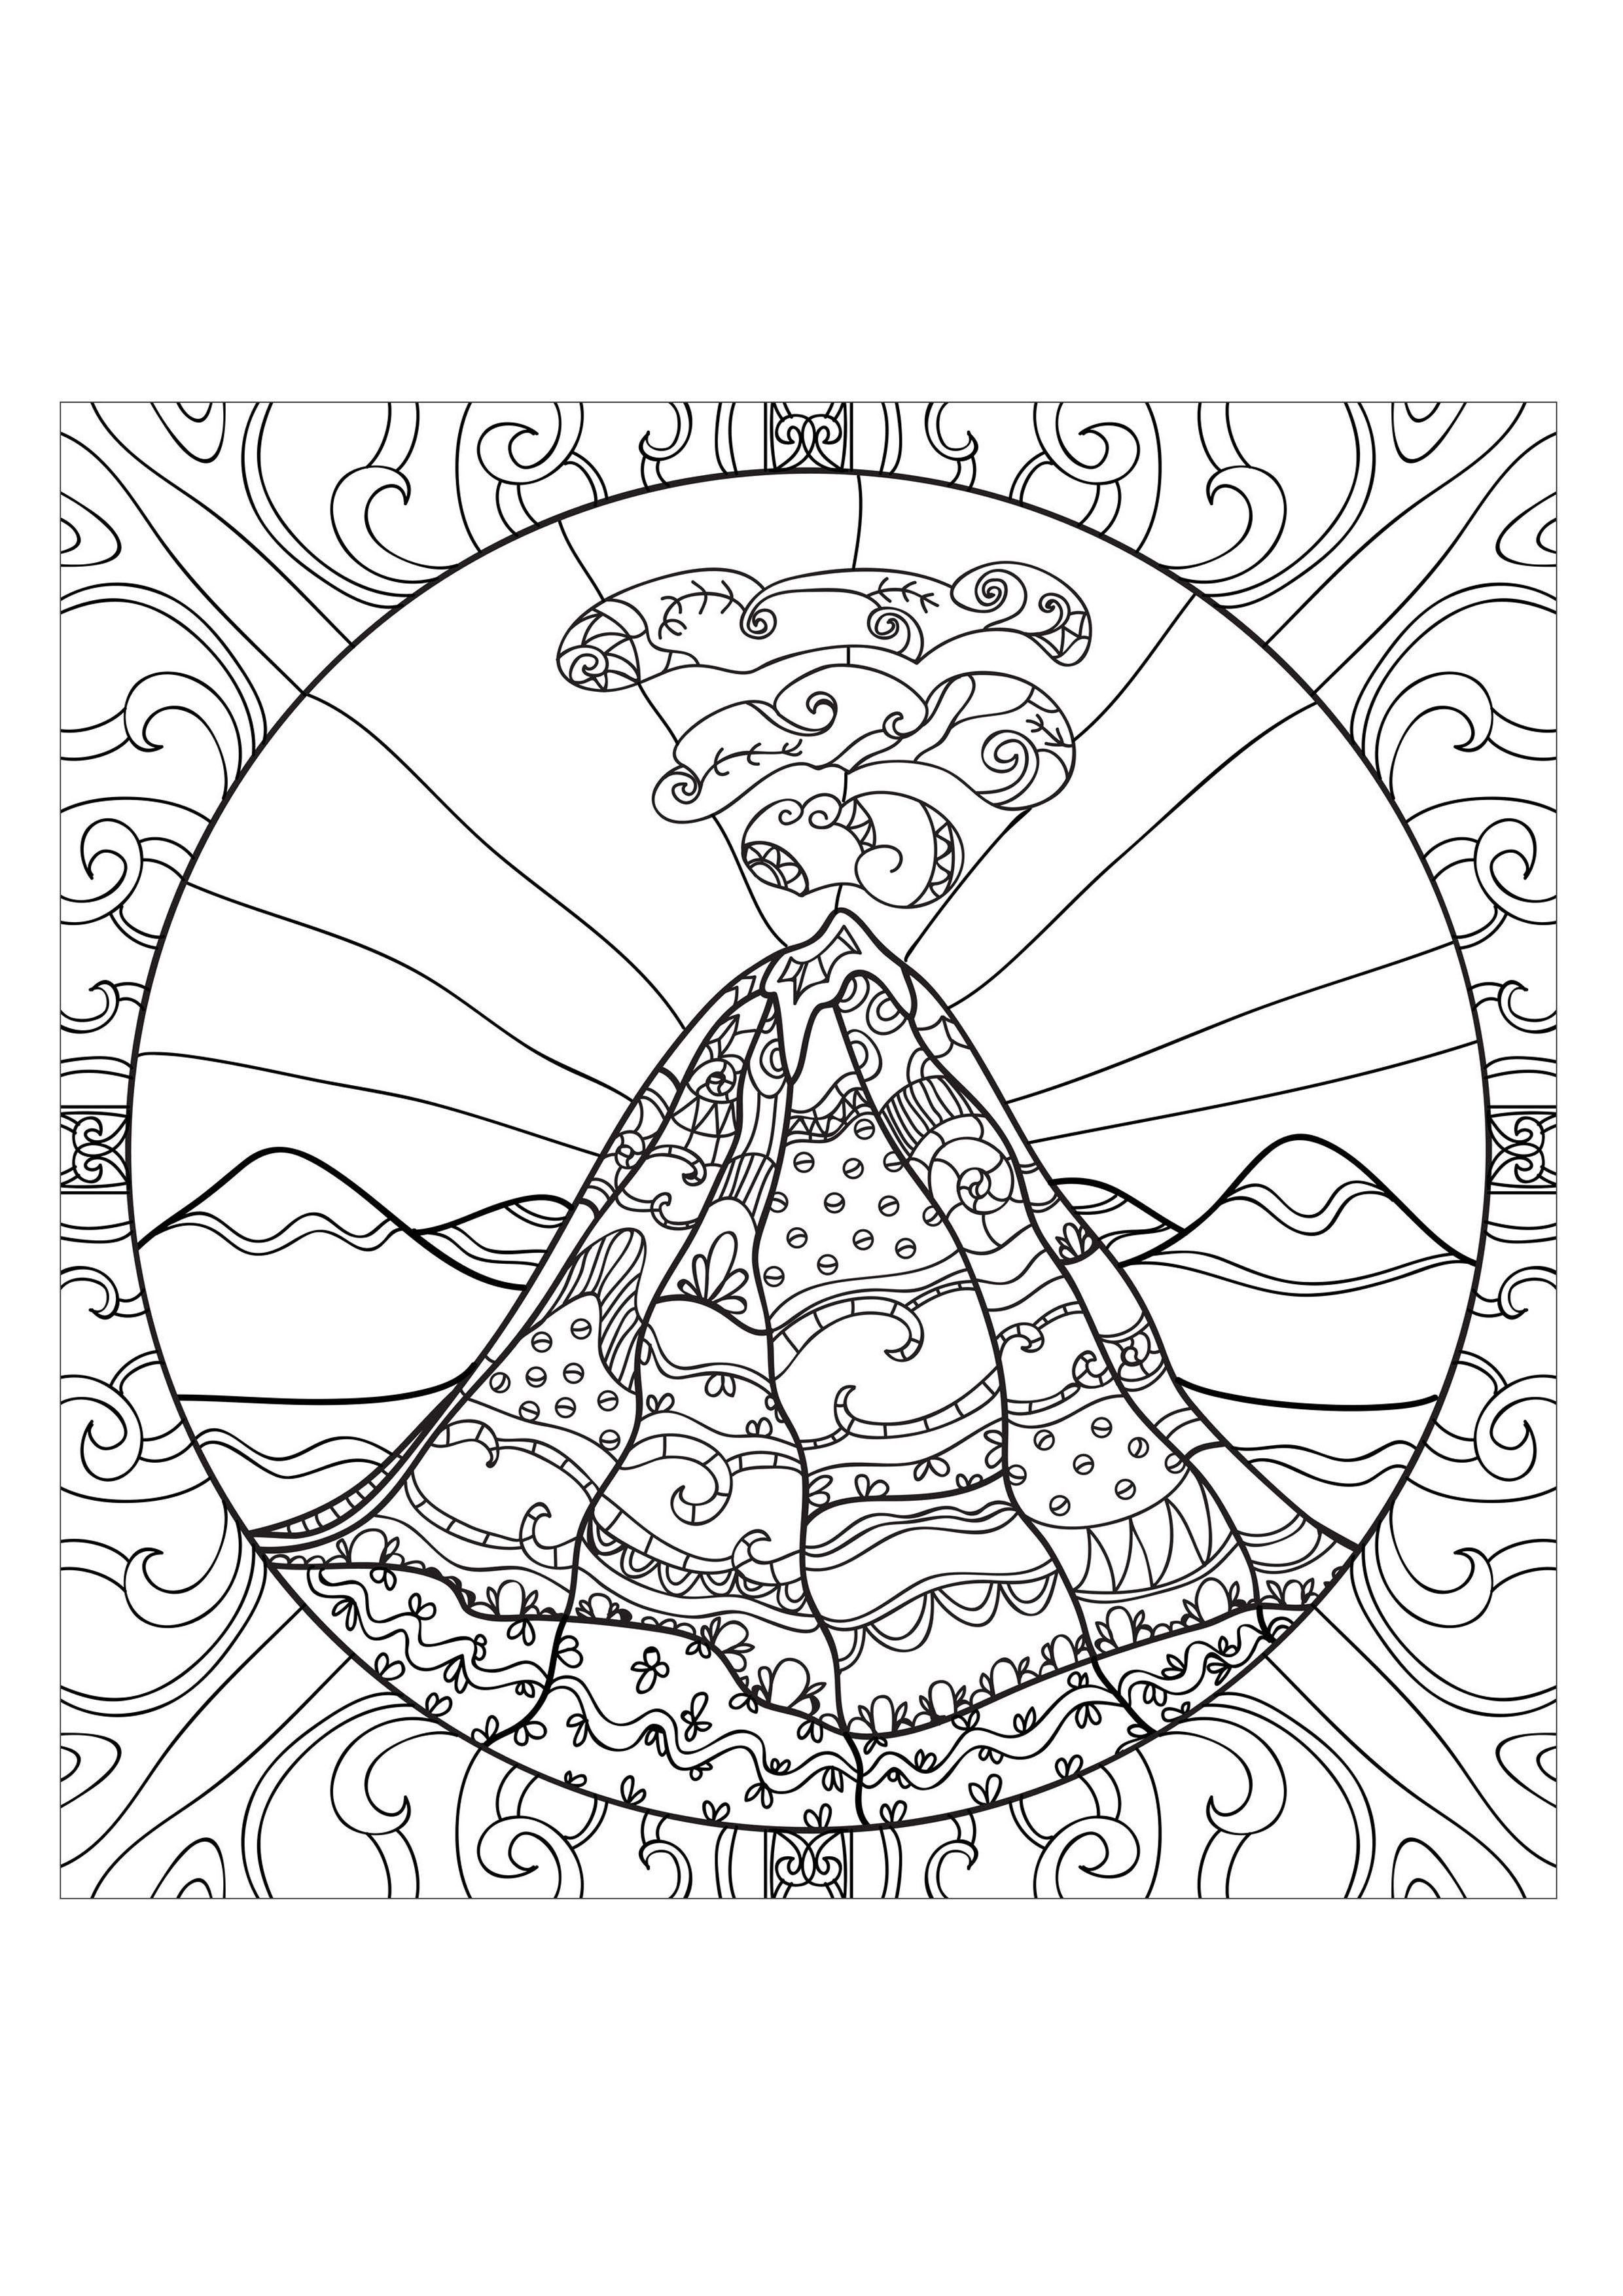 Coloring Page Adults Volcano 2 From The Gallery Zen